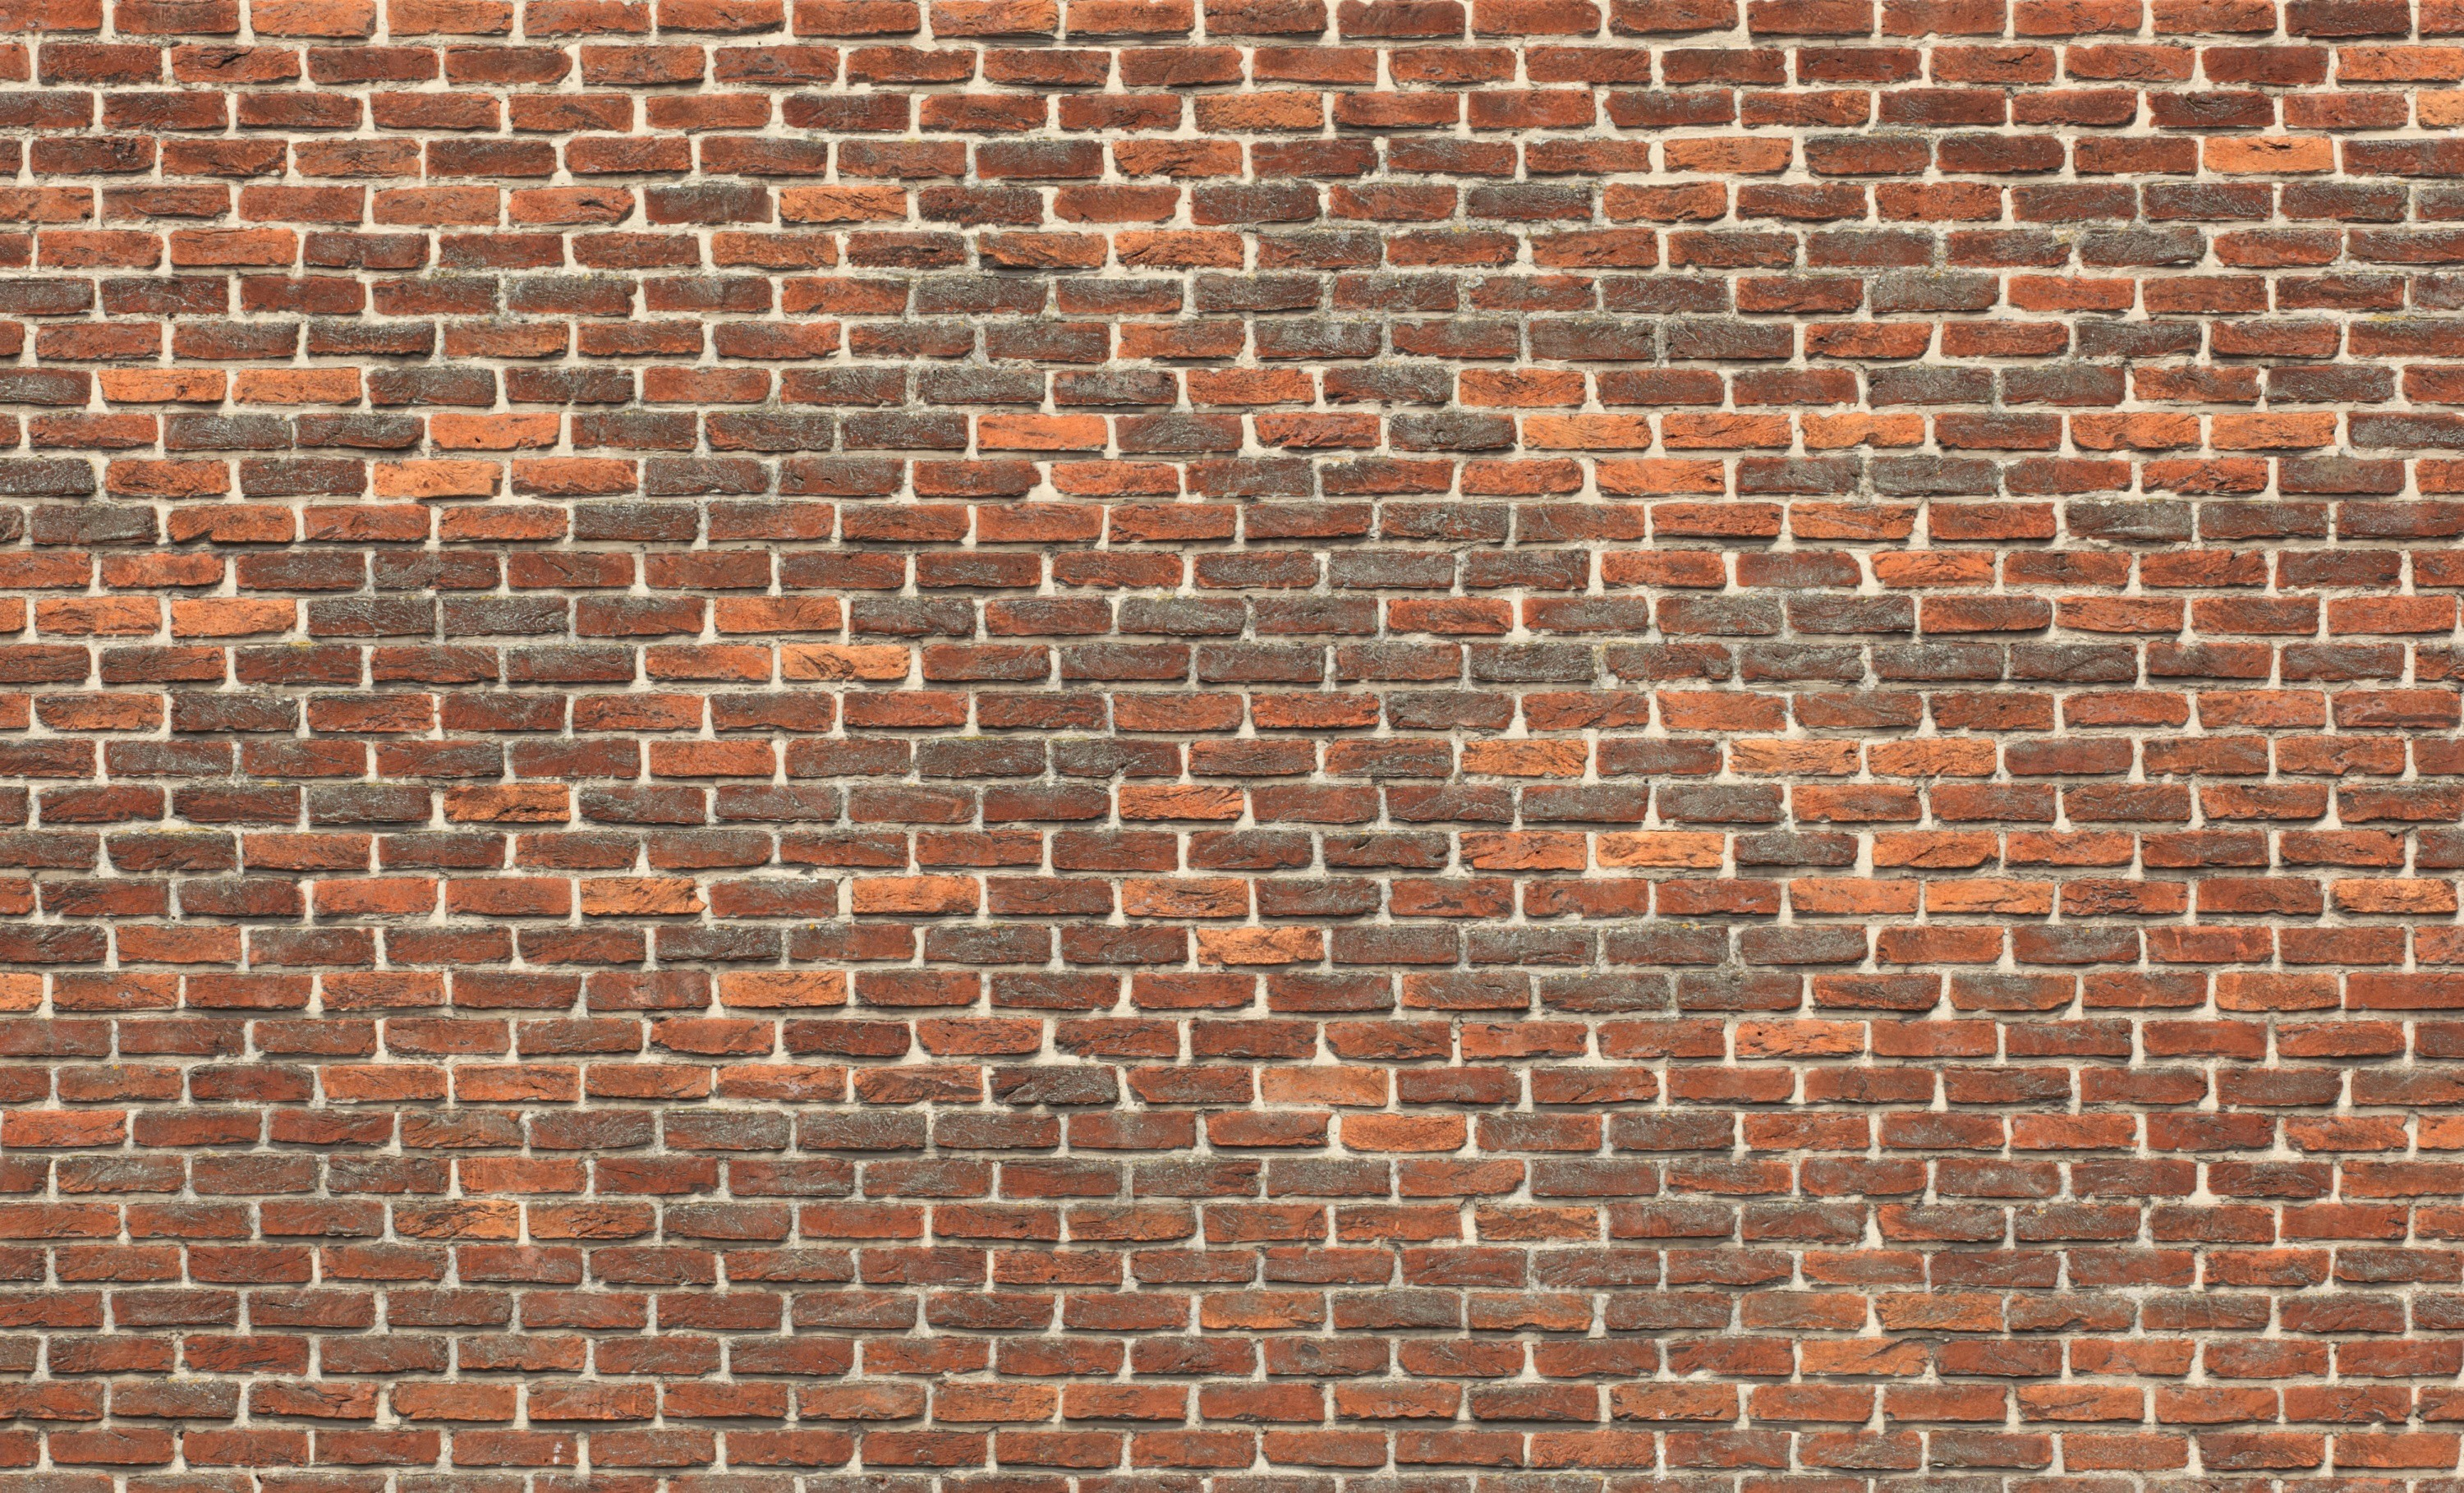 Brick Wall background ·① Download free stunning HD backgrounds for desktop and mobile devices in ...